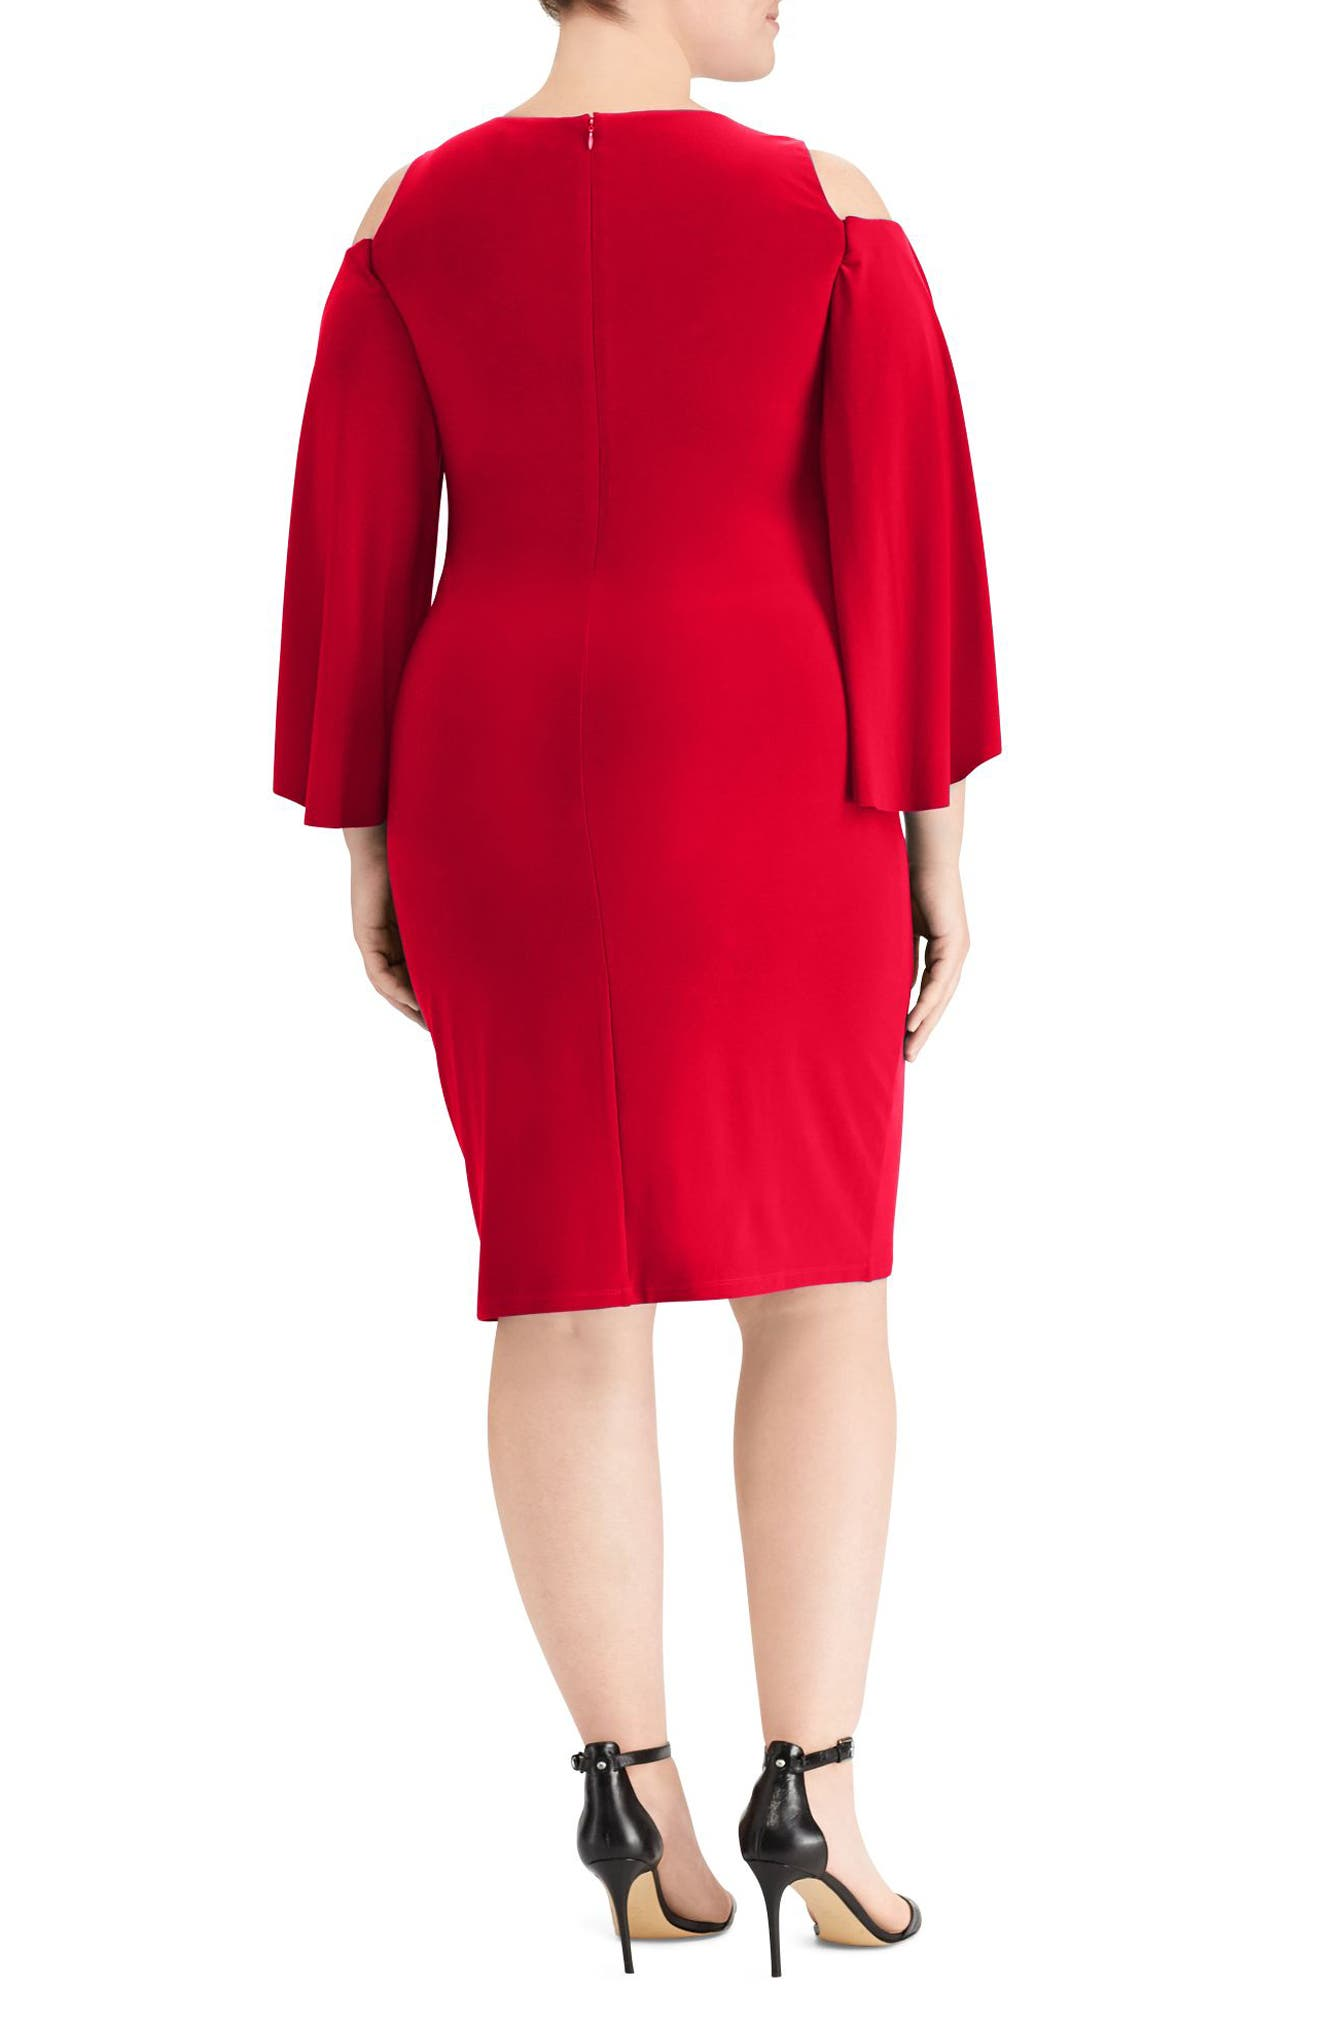 Debbie Dress,                             Alternate thumbnail 2, color,                             Parlor Red